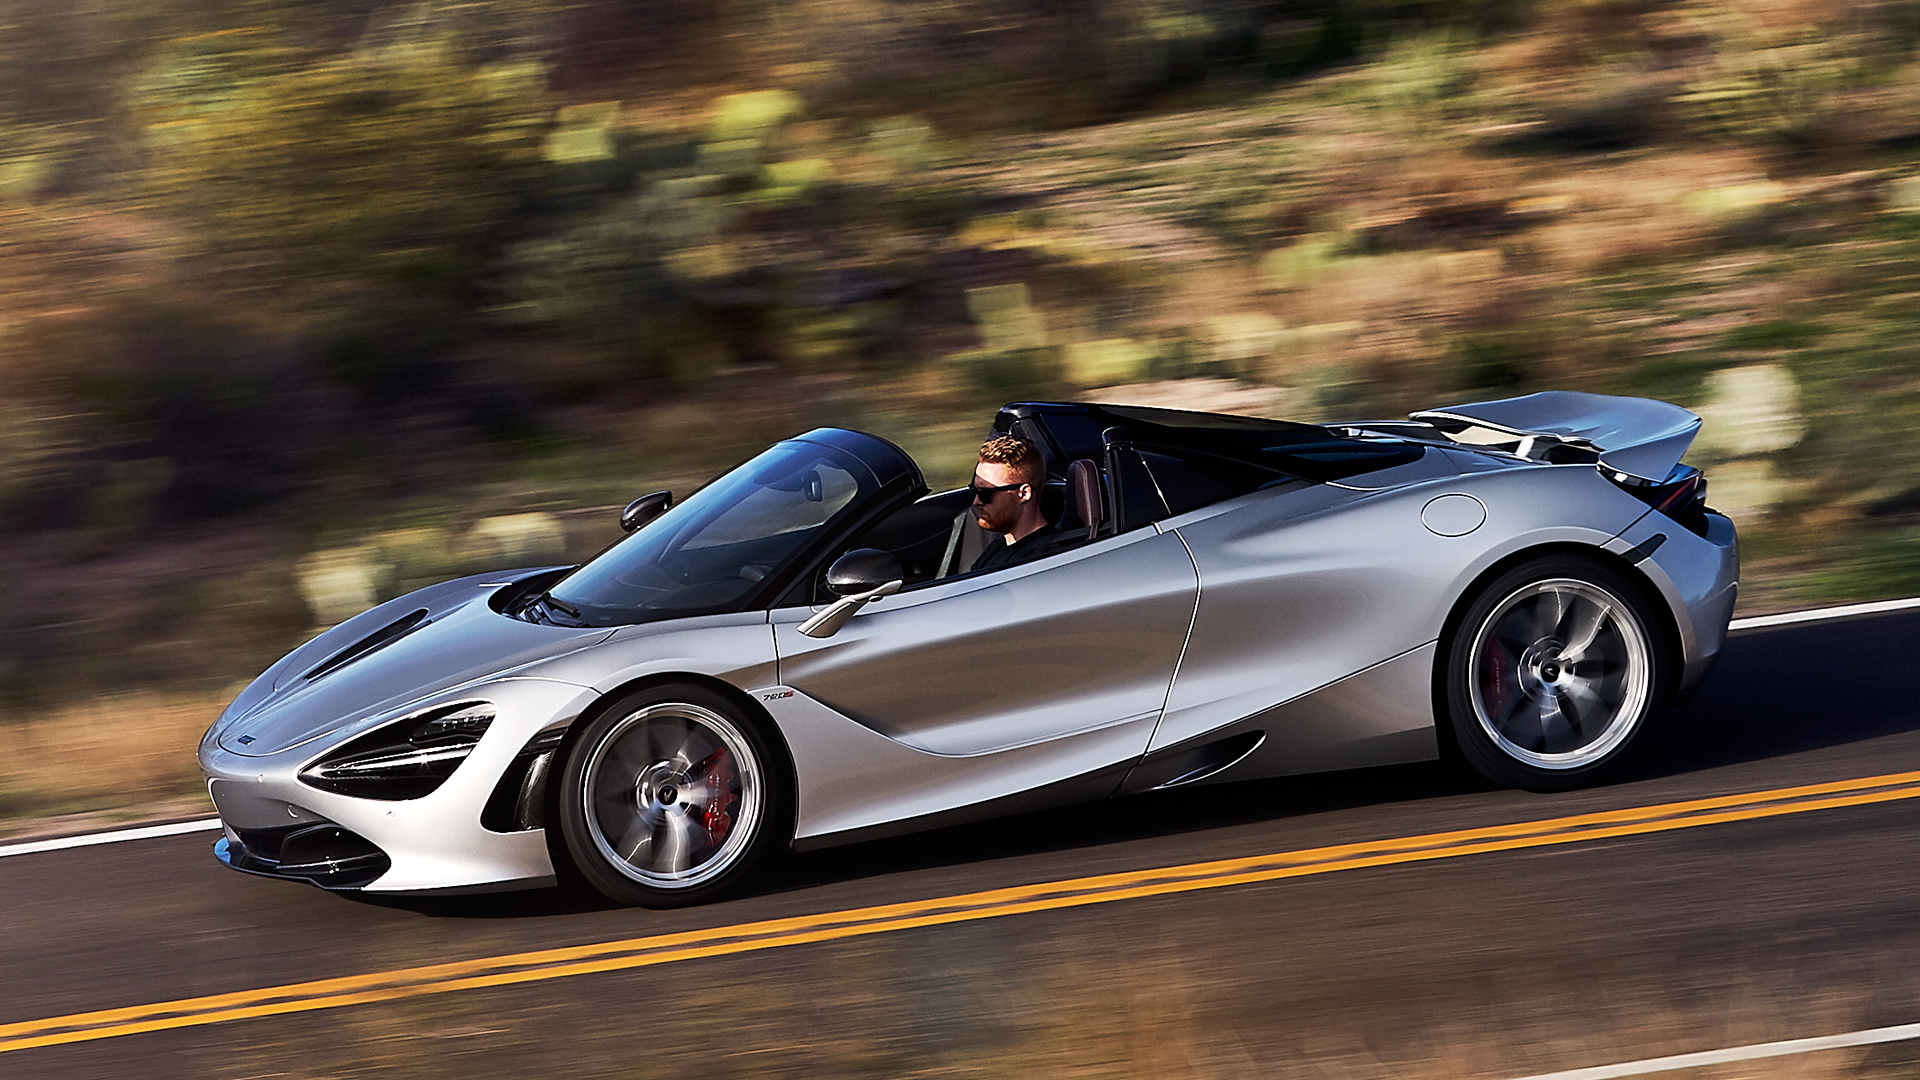 2019 McLaren 720S Spider First Drive Review: A Supercar